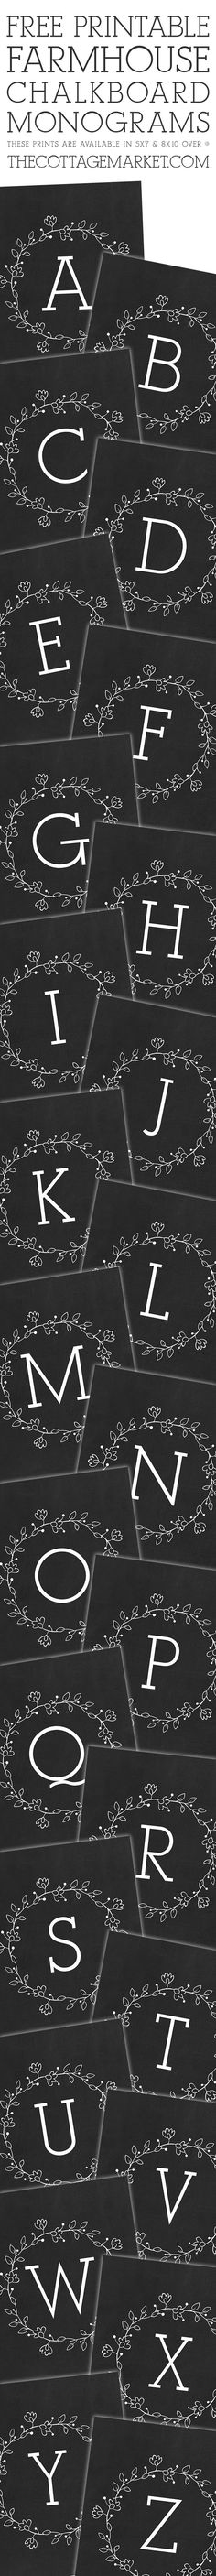 Free Printable Farmhouse Chalkboard Monograms (The Cottage Market) Printable Labels, Printable Wall Art, Free Printables, Free Printable Monogram, Vintage Diy, Web Design, Paper Crafts, Diy Crafts, Subway Art